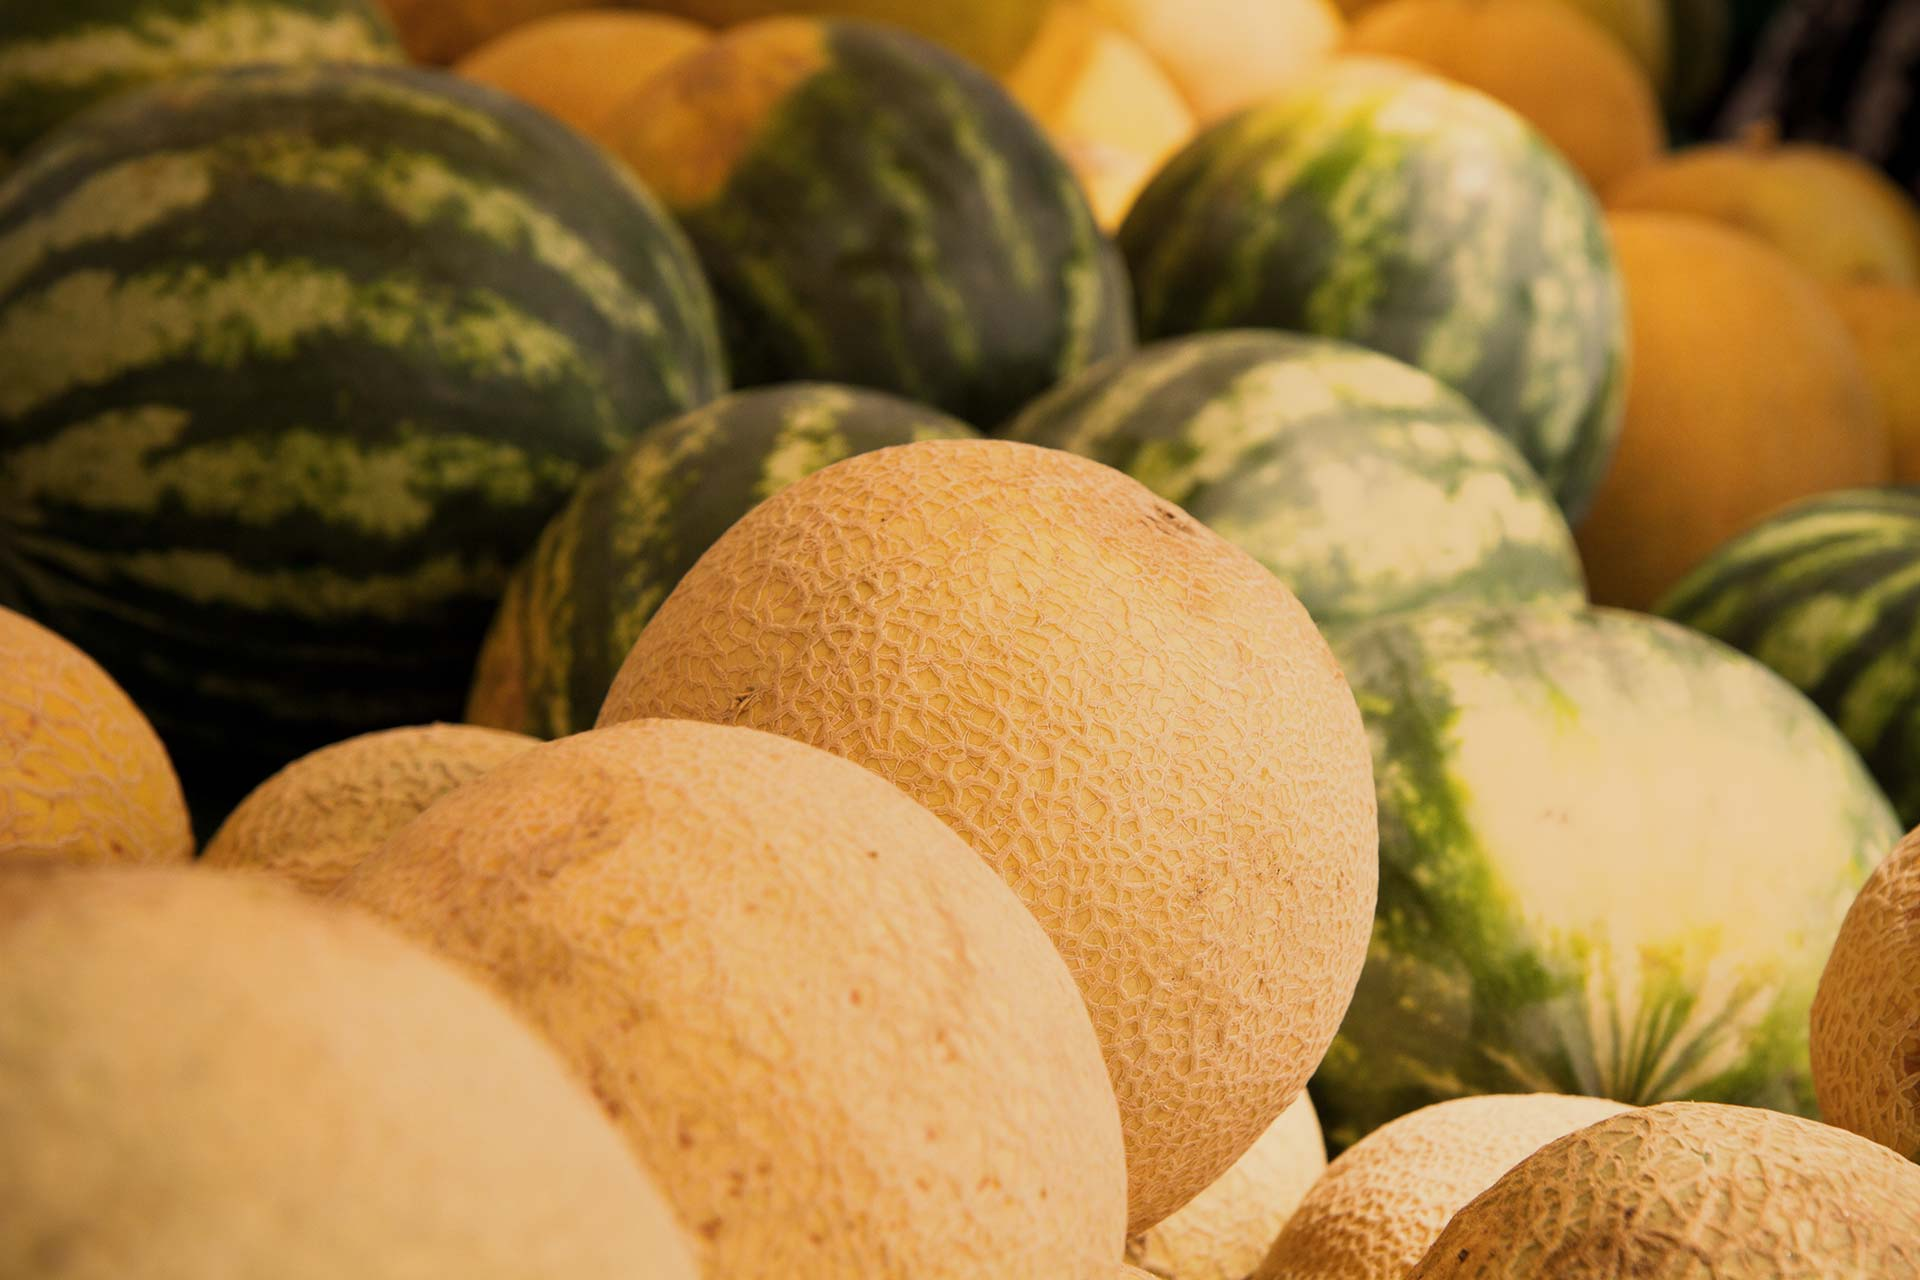 Close-up of assorted melons